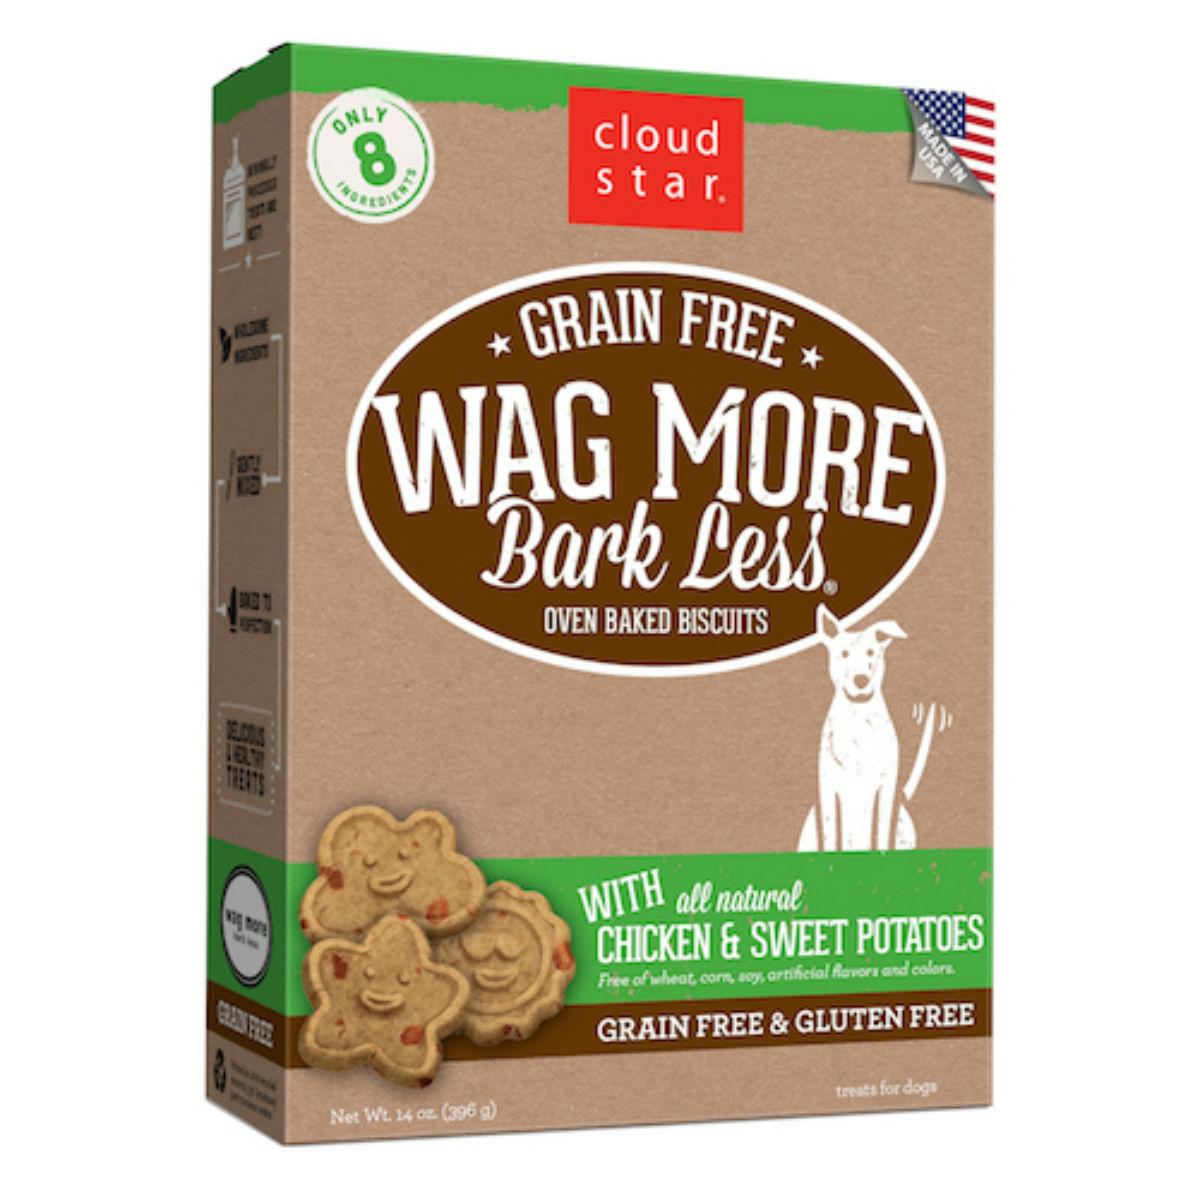 Wag More Bark Less Grain Free Baked Dog Treat - Chicken and Sweet Potato